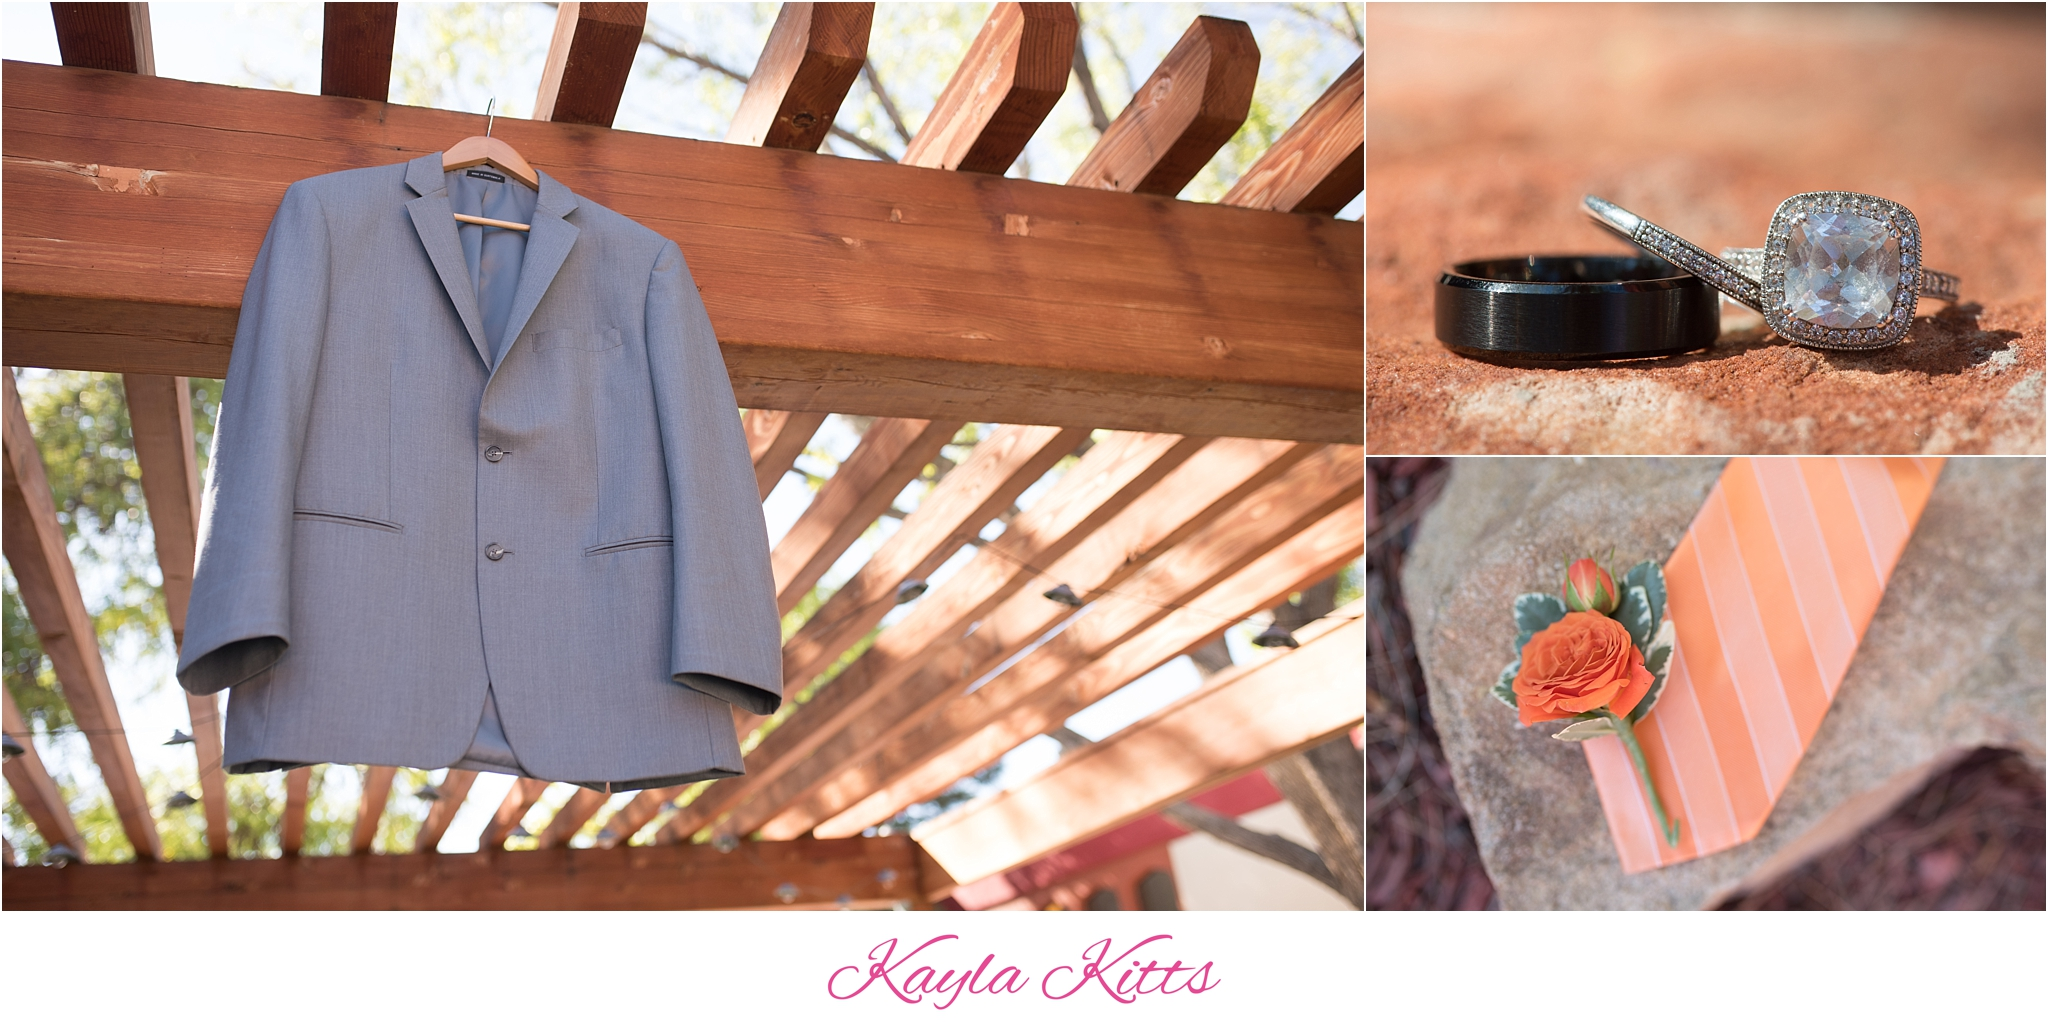 kayla kitts photography - albuquerque wedding photographer - albuquerque wedding photography - albuquerque venue - casa de suenos - hotel albuquerque wedding - new mexico wedding photographer - los poblanos wedding_0003.jpeg